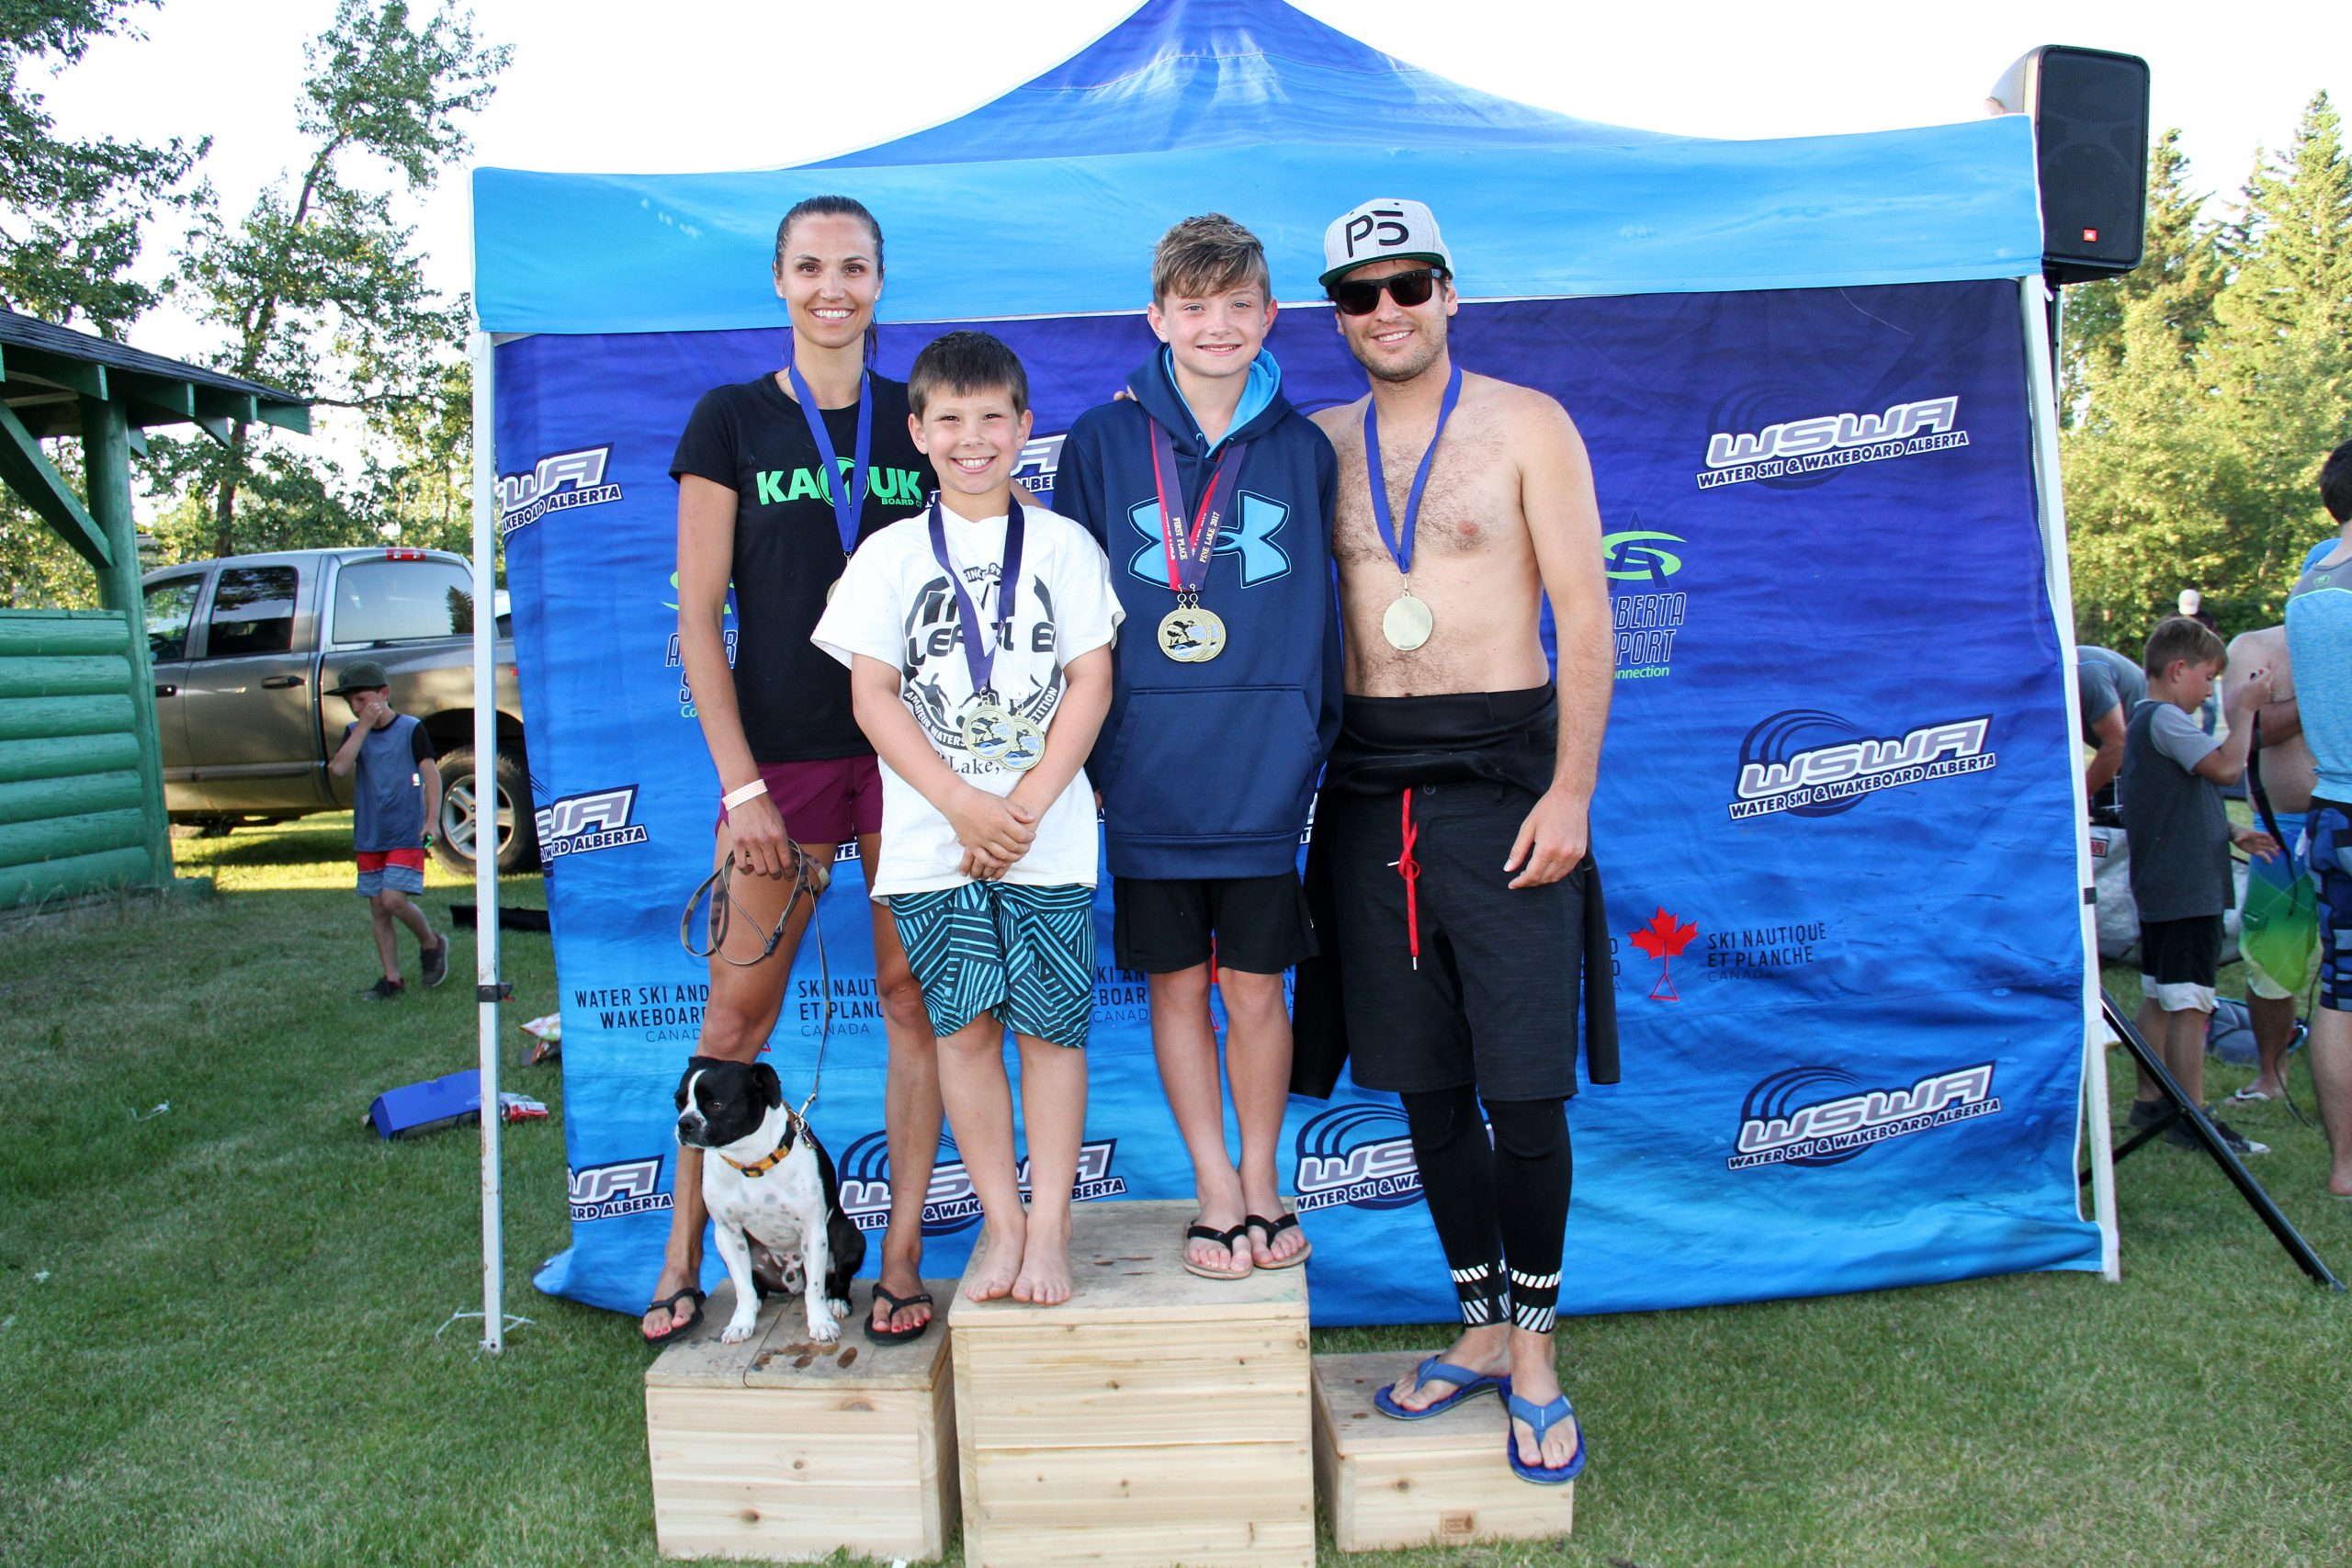 Podium finishes for EK wakeboarders in Alberta